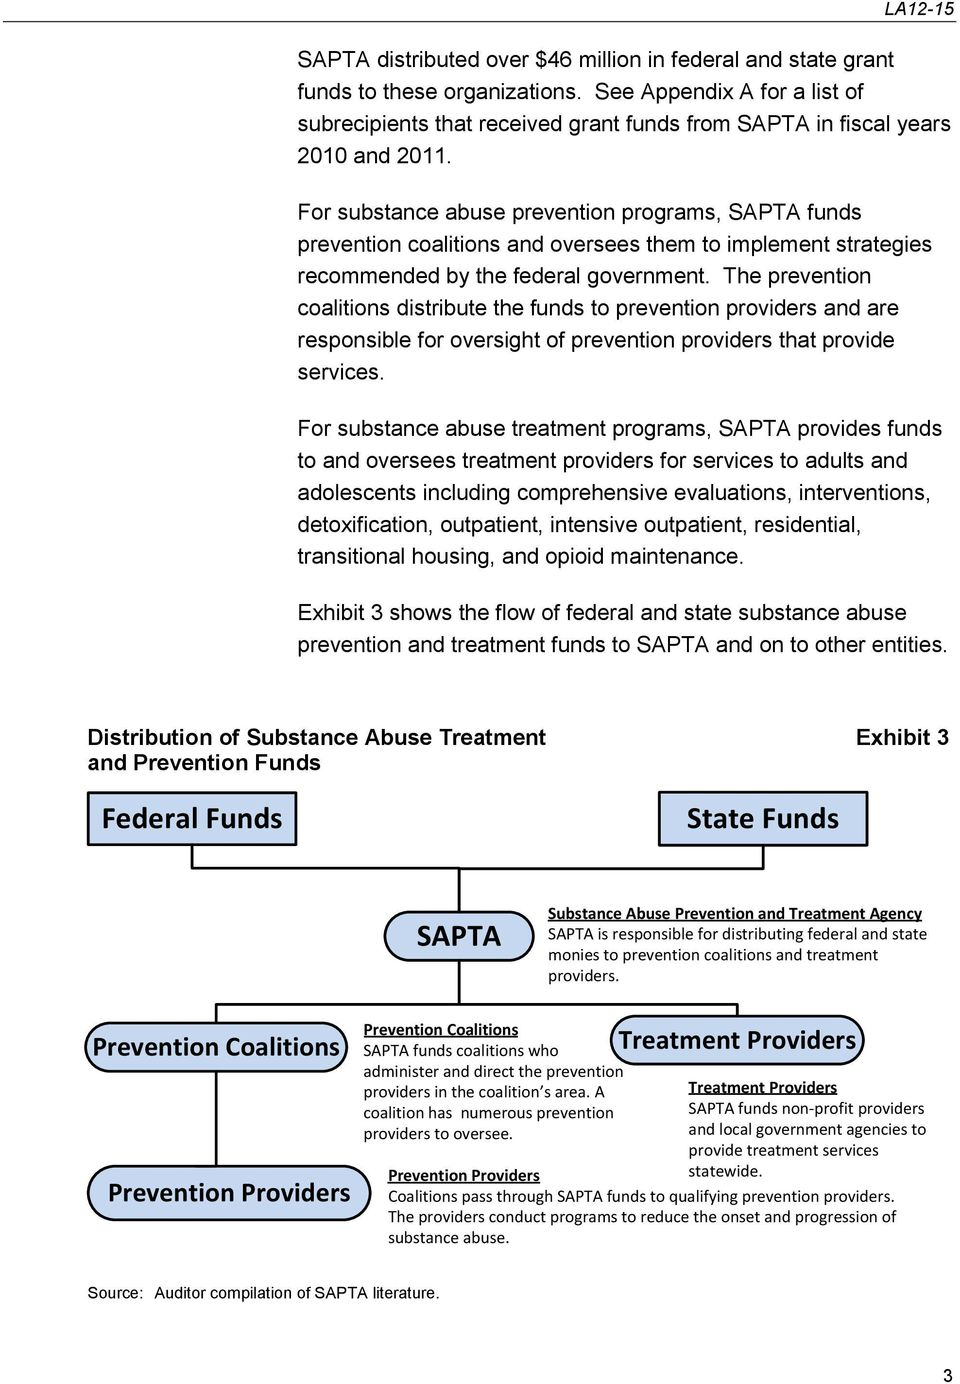 For substance abuse prevention programs, SAPTA funds prevention coalitions and oversees them to implement strategies recommended by the federal government.